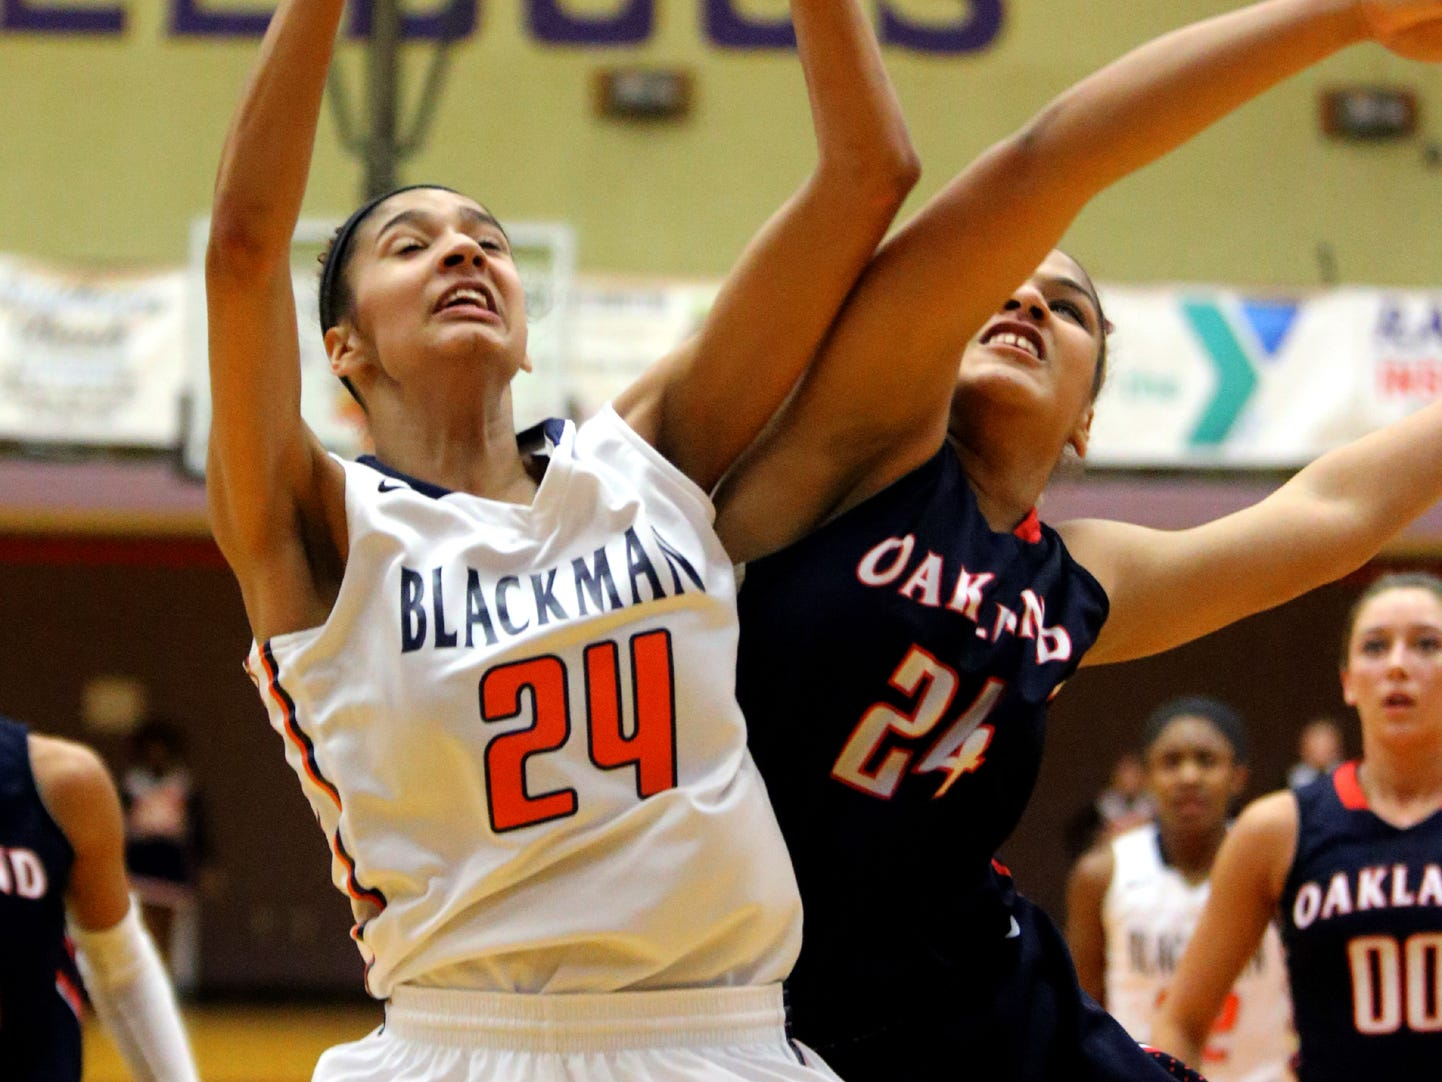 Blackman's Jazz Bond and Oakland's Aaliyah Patterson firght for a rebound in the Region 4-AAA final game held at Smyrna on Friday Feb. 27, 2015.